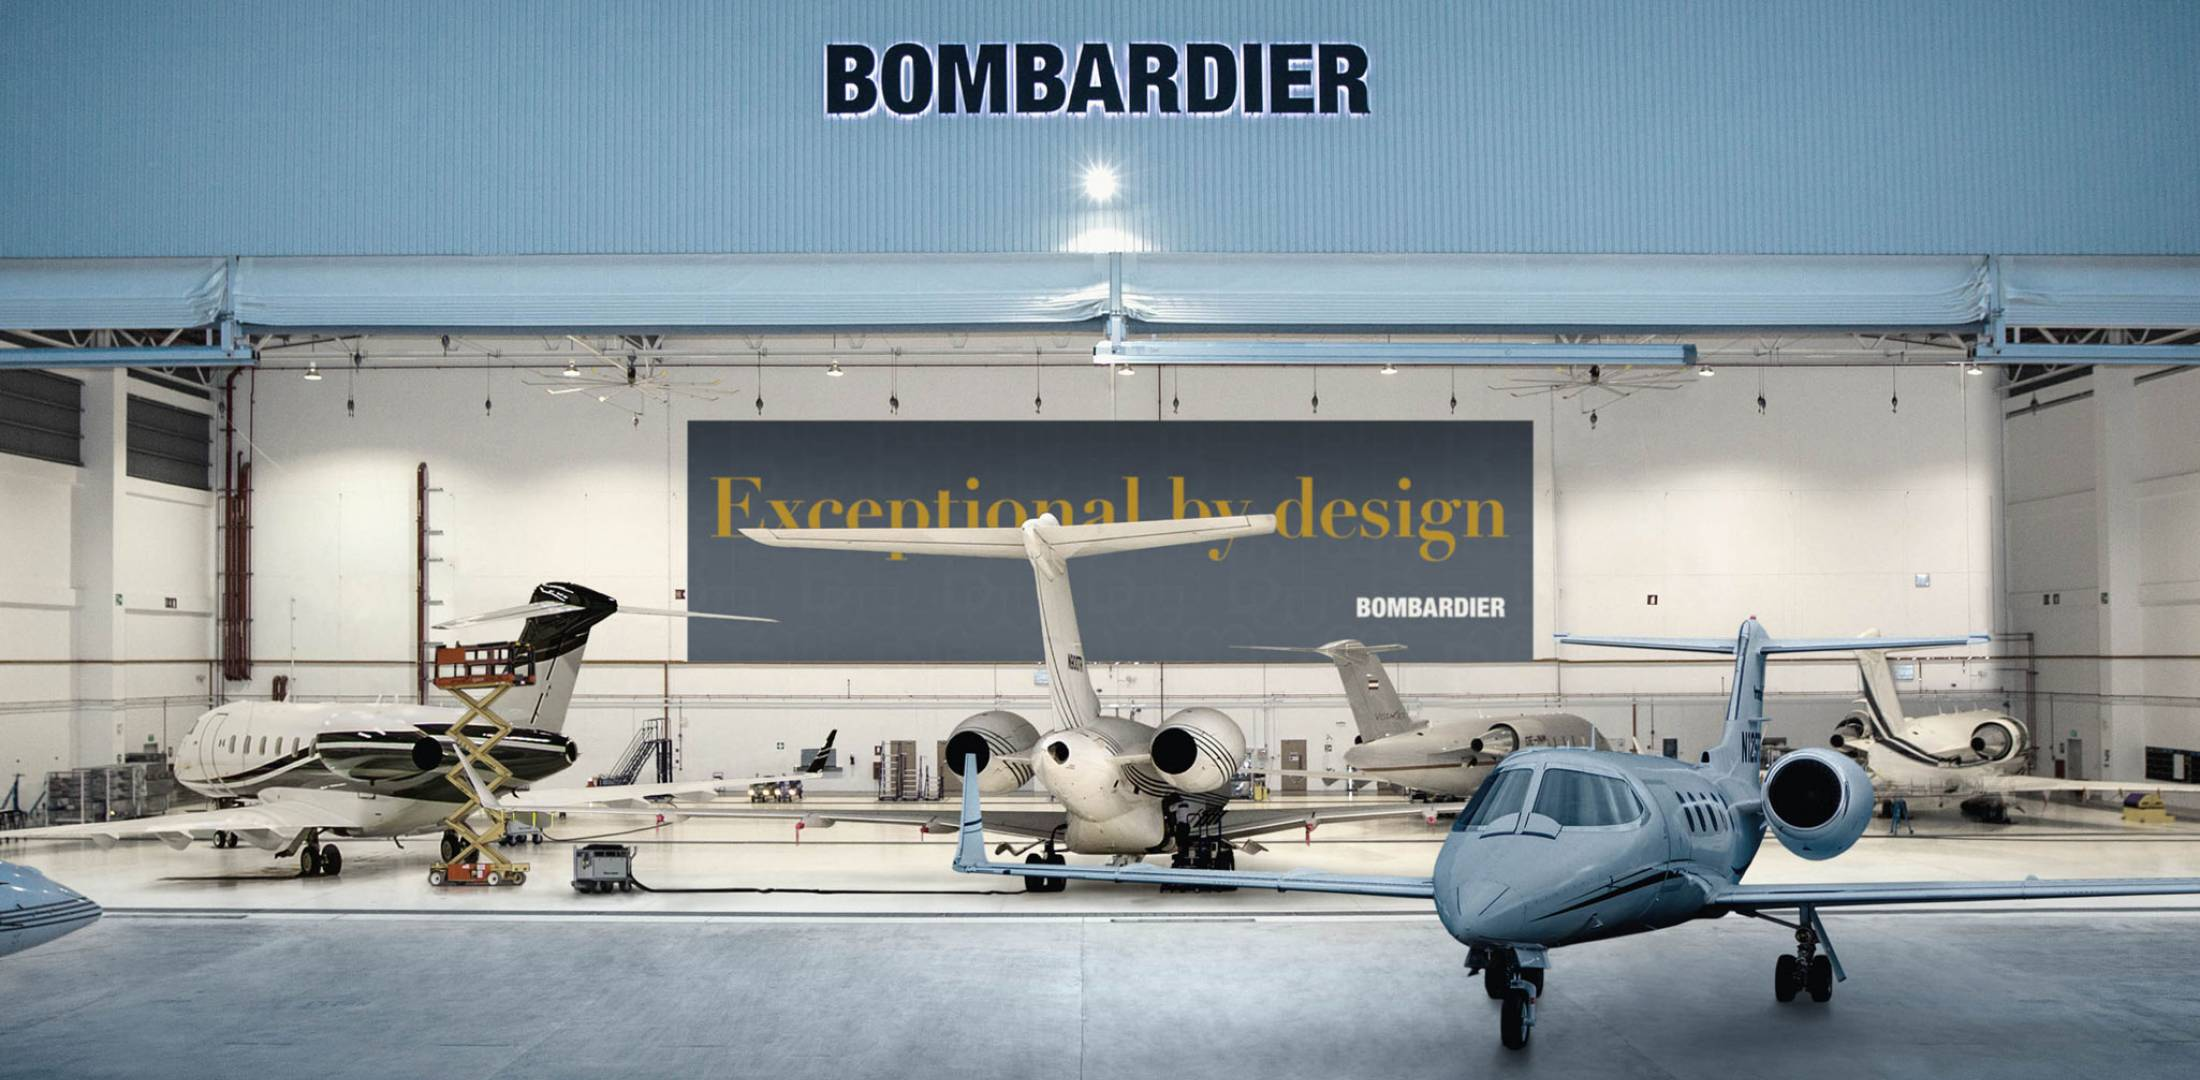 hangar with planes